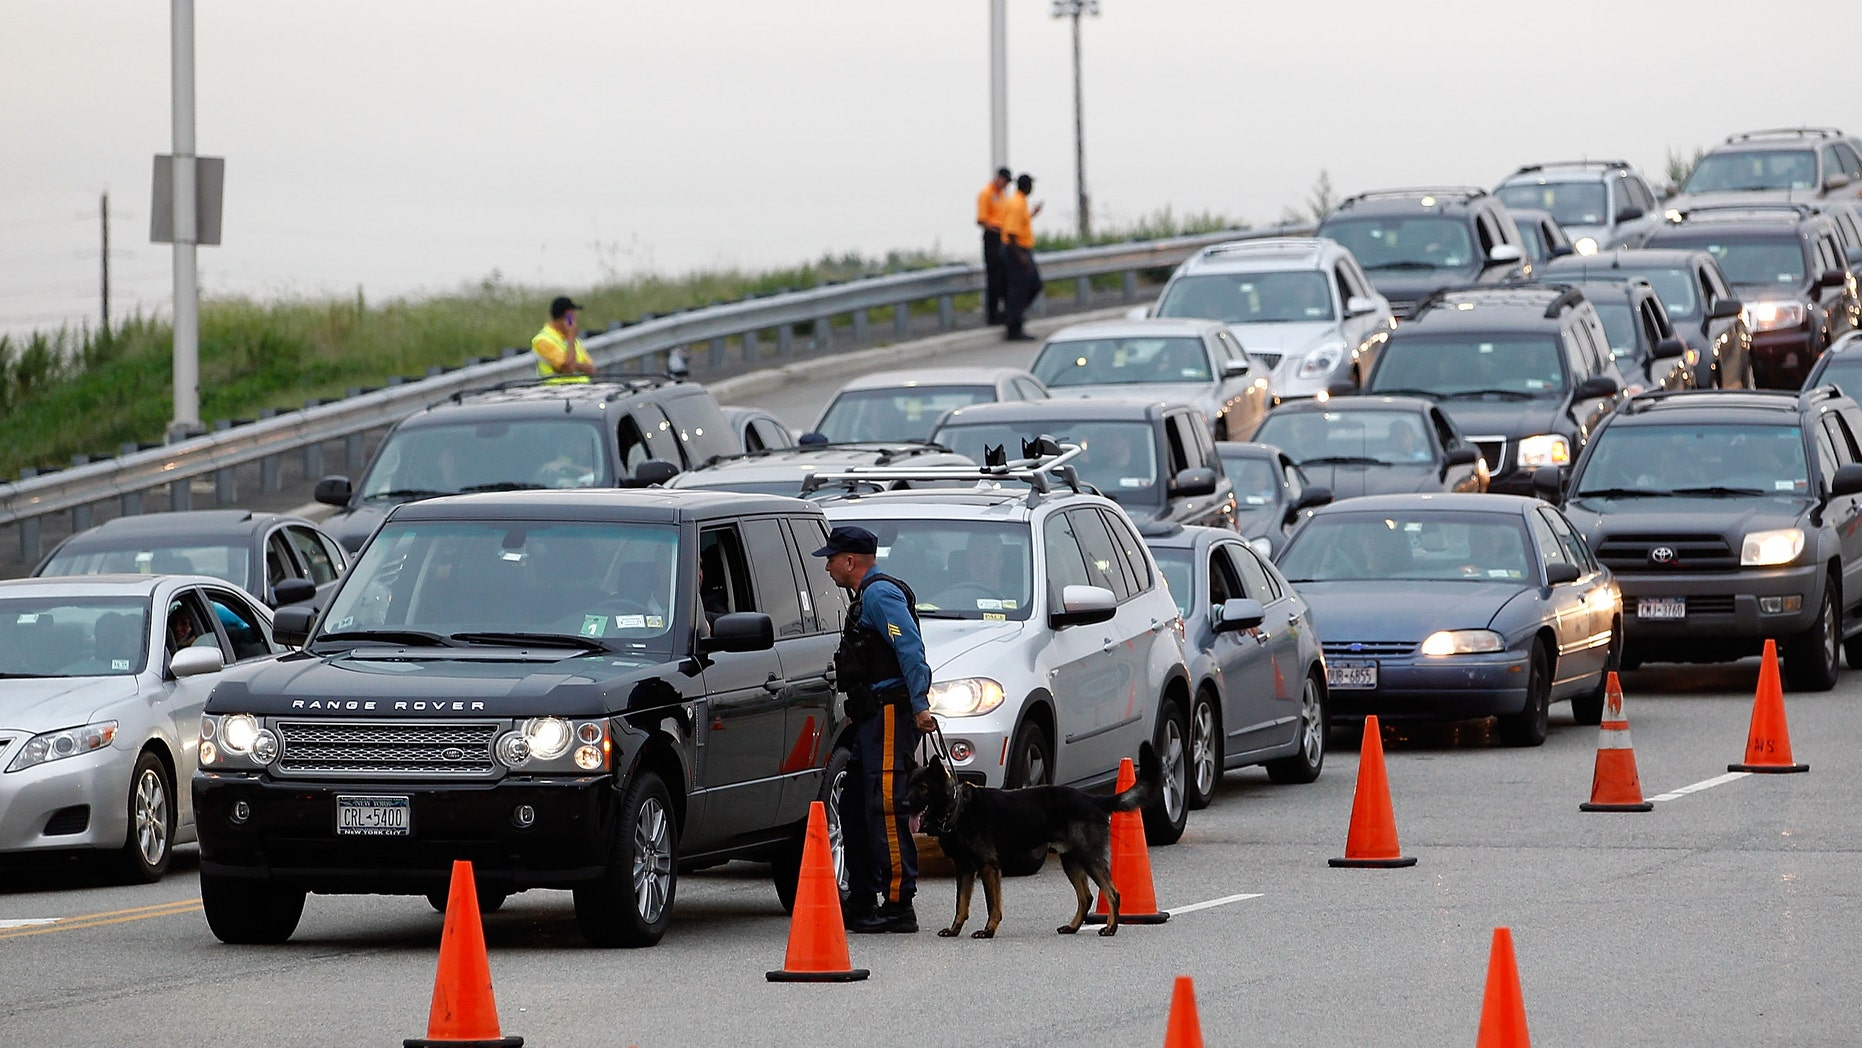 EAST RUTHERFORD, NJ - SEPTEMBER 11:  K-9 State Troopers and stadium security inspect cars with dogs as they enter the stadium for the NFL season opener between the New York Jets and Dallas Cowboys at MetLife Stadium on September 11, 2011 in East Rutherford, New Jersey. Extra security is in place at the stadium due to the 10 year anniversary of the 9/11 terror attacks.  (Photo by Jeff Zelevansky/Getty Images)